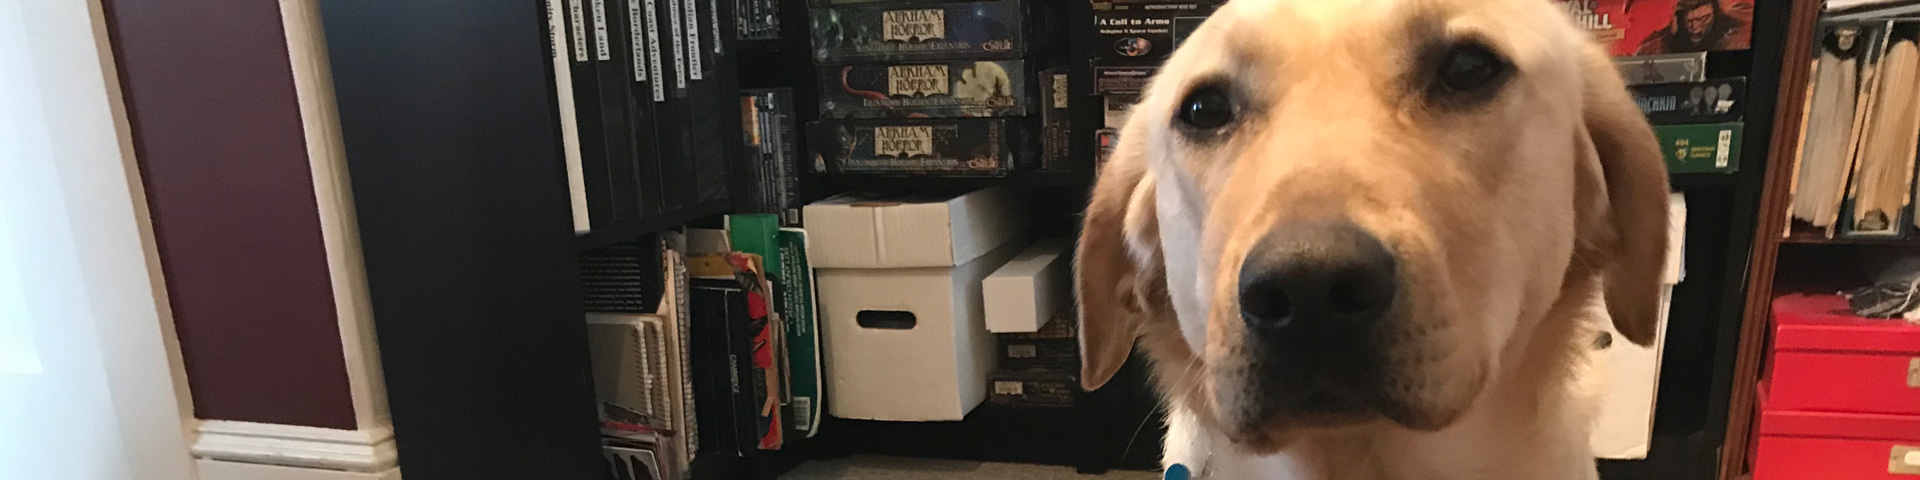 A yellow Labrador Retriever in front of a bookshelf filled with role-playing game books and board games.